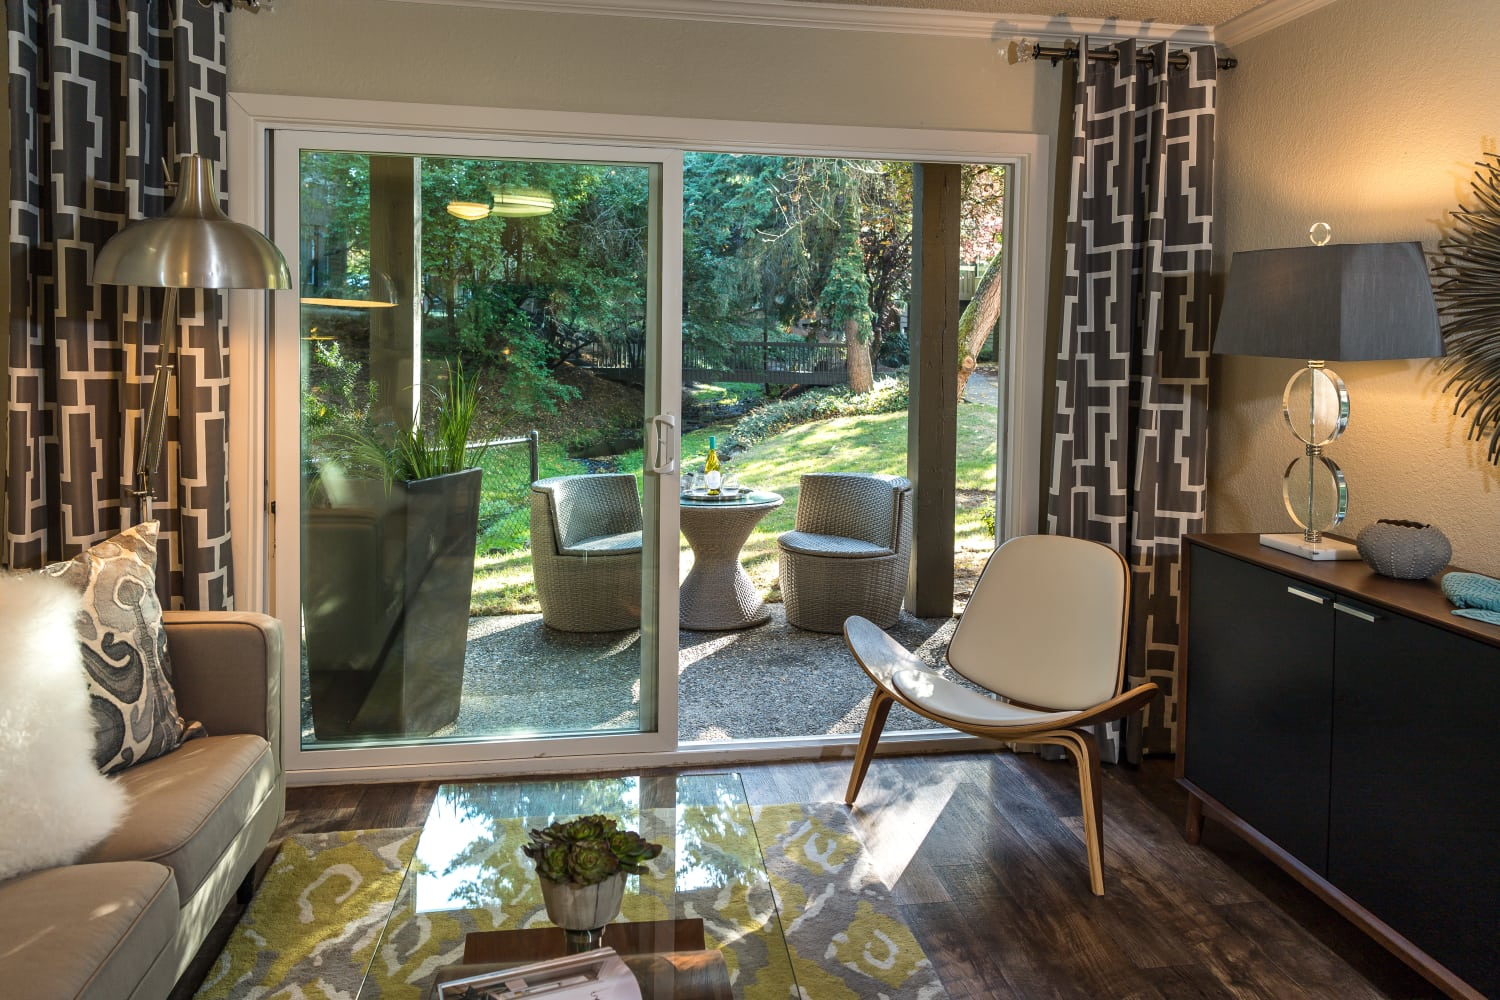 Access to private patio at Vue Kirkland Apartments in Kirkland, Washington